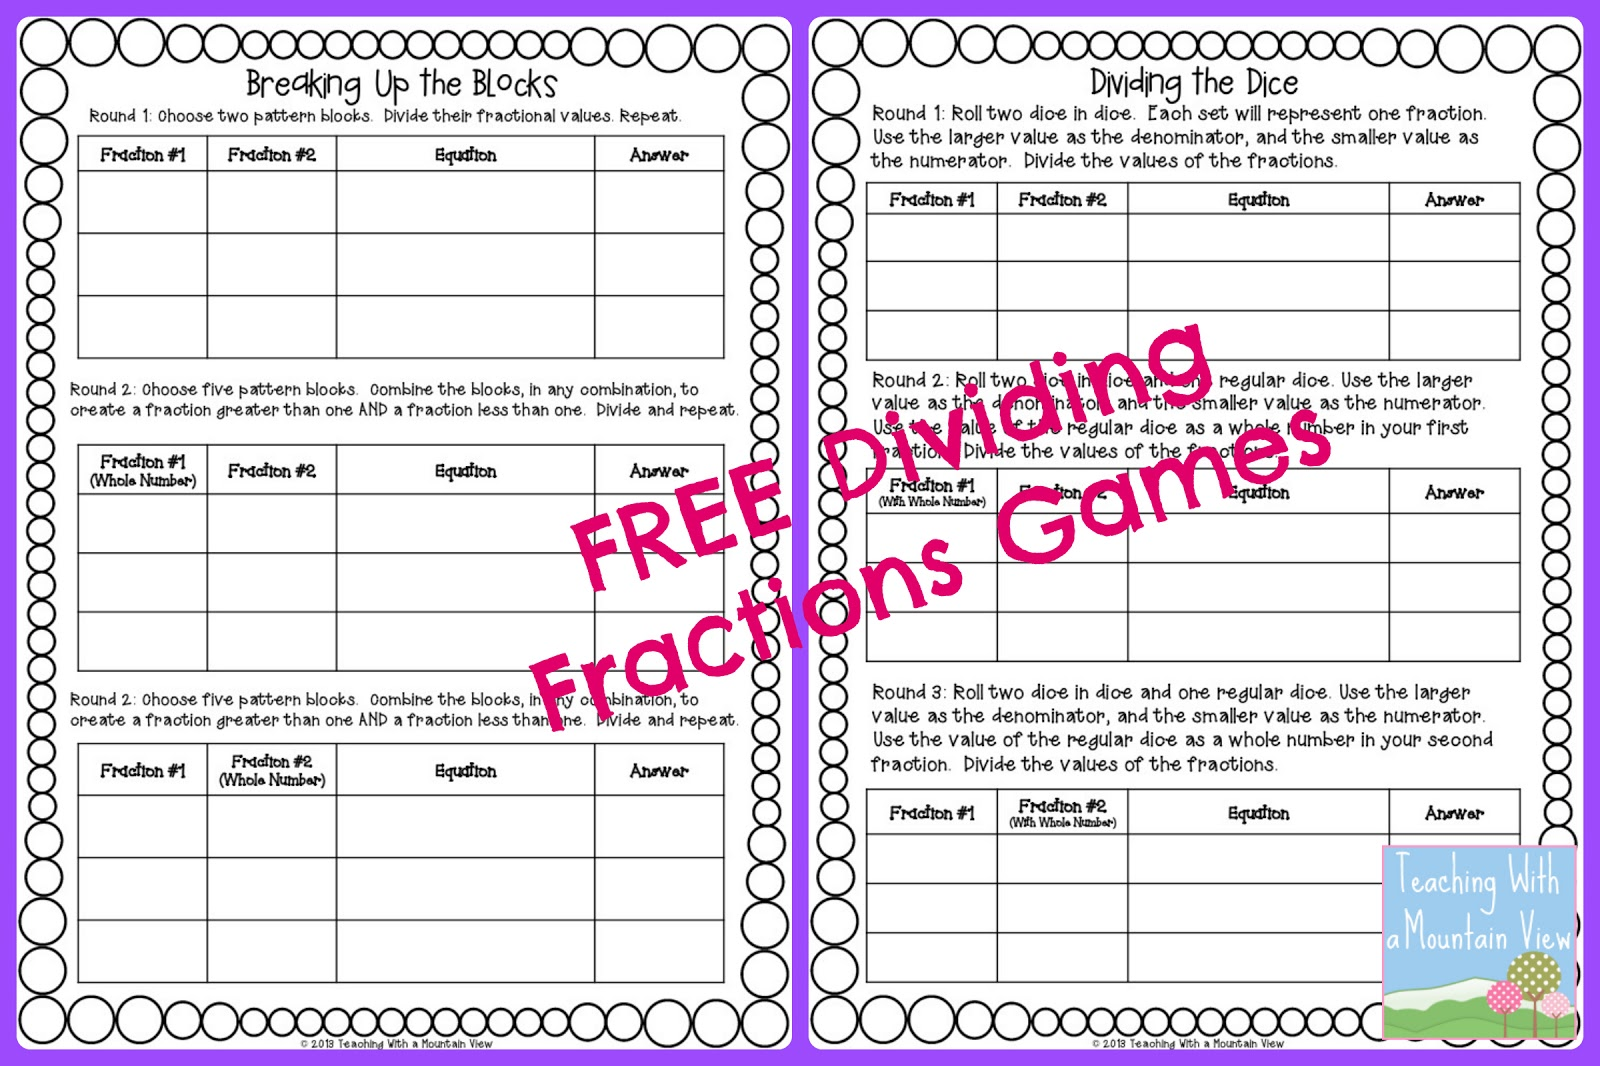 math worksheet : teaching with a mountain view dividing fractions anchor chart  : Free Dividing Fractions Worksheets